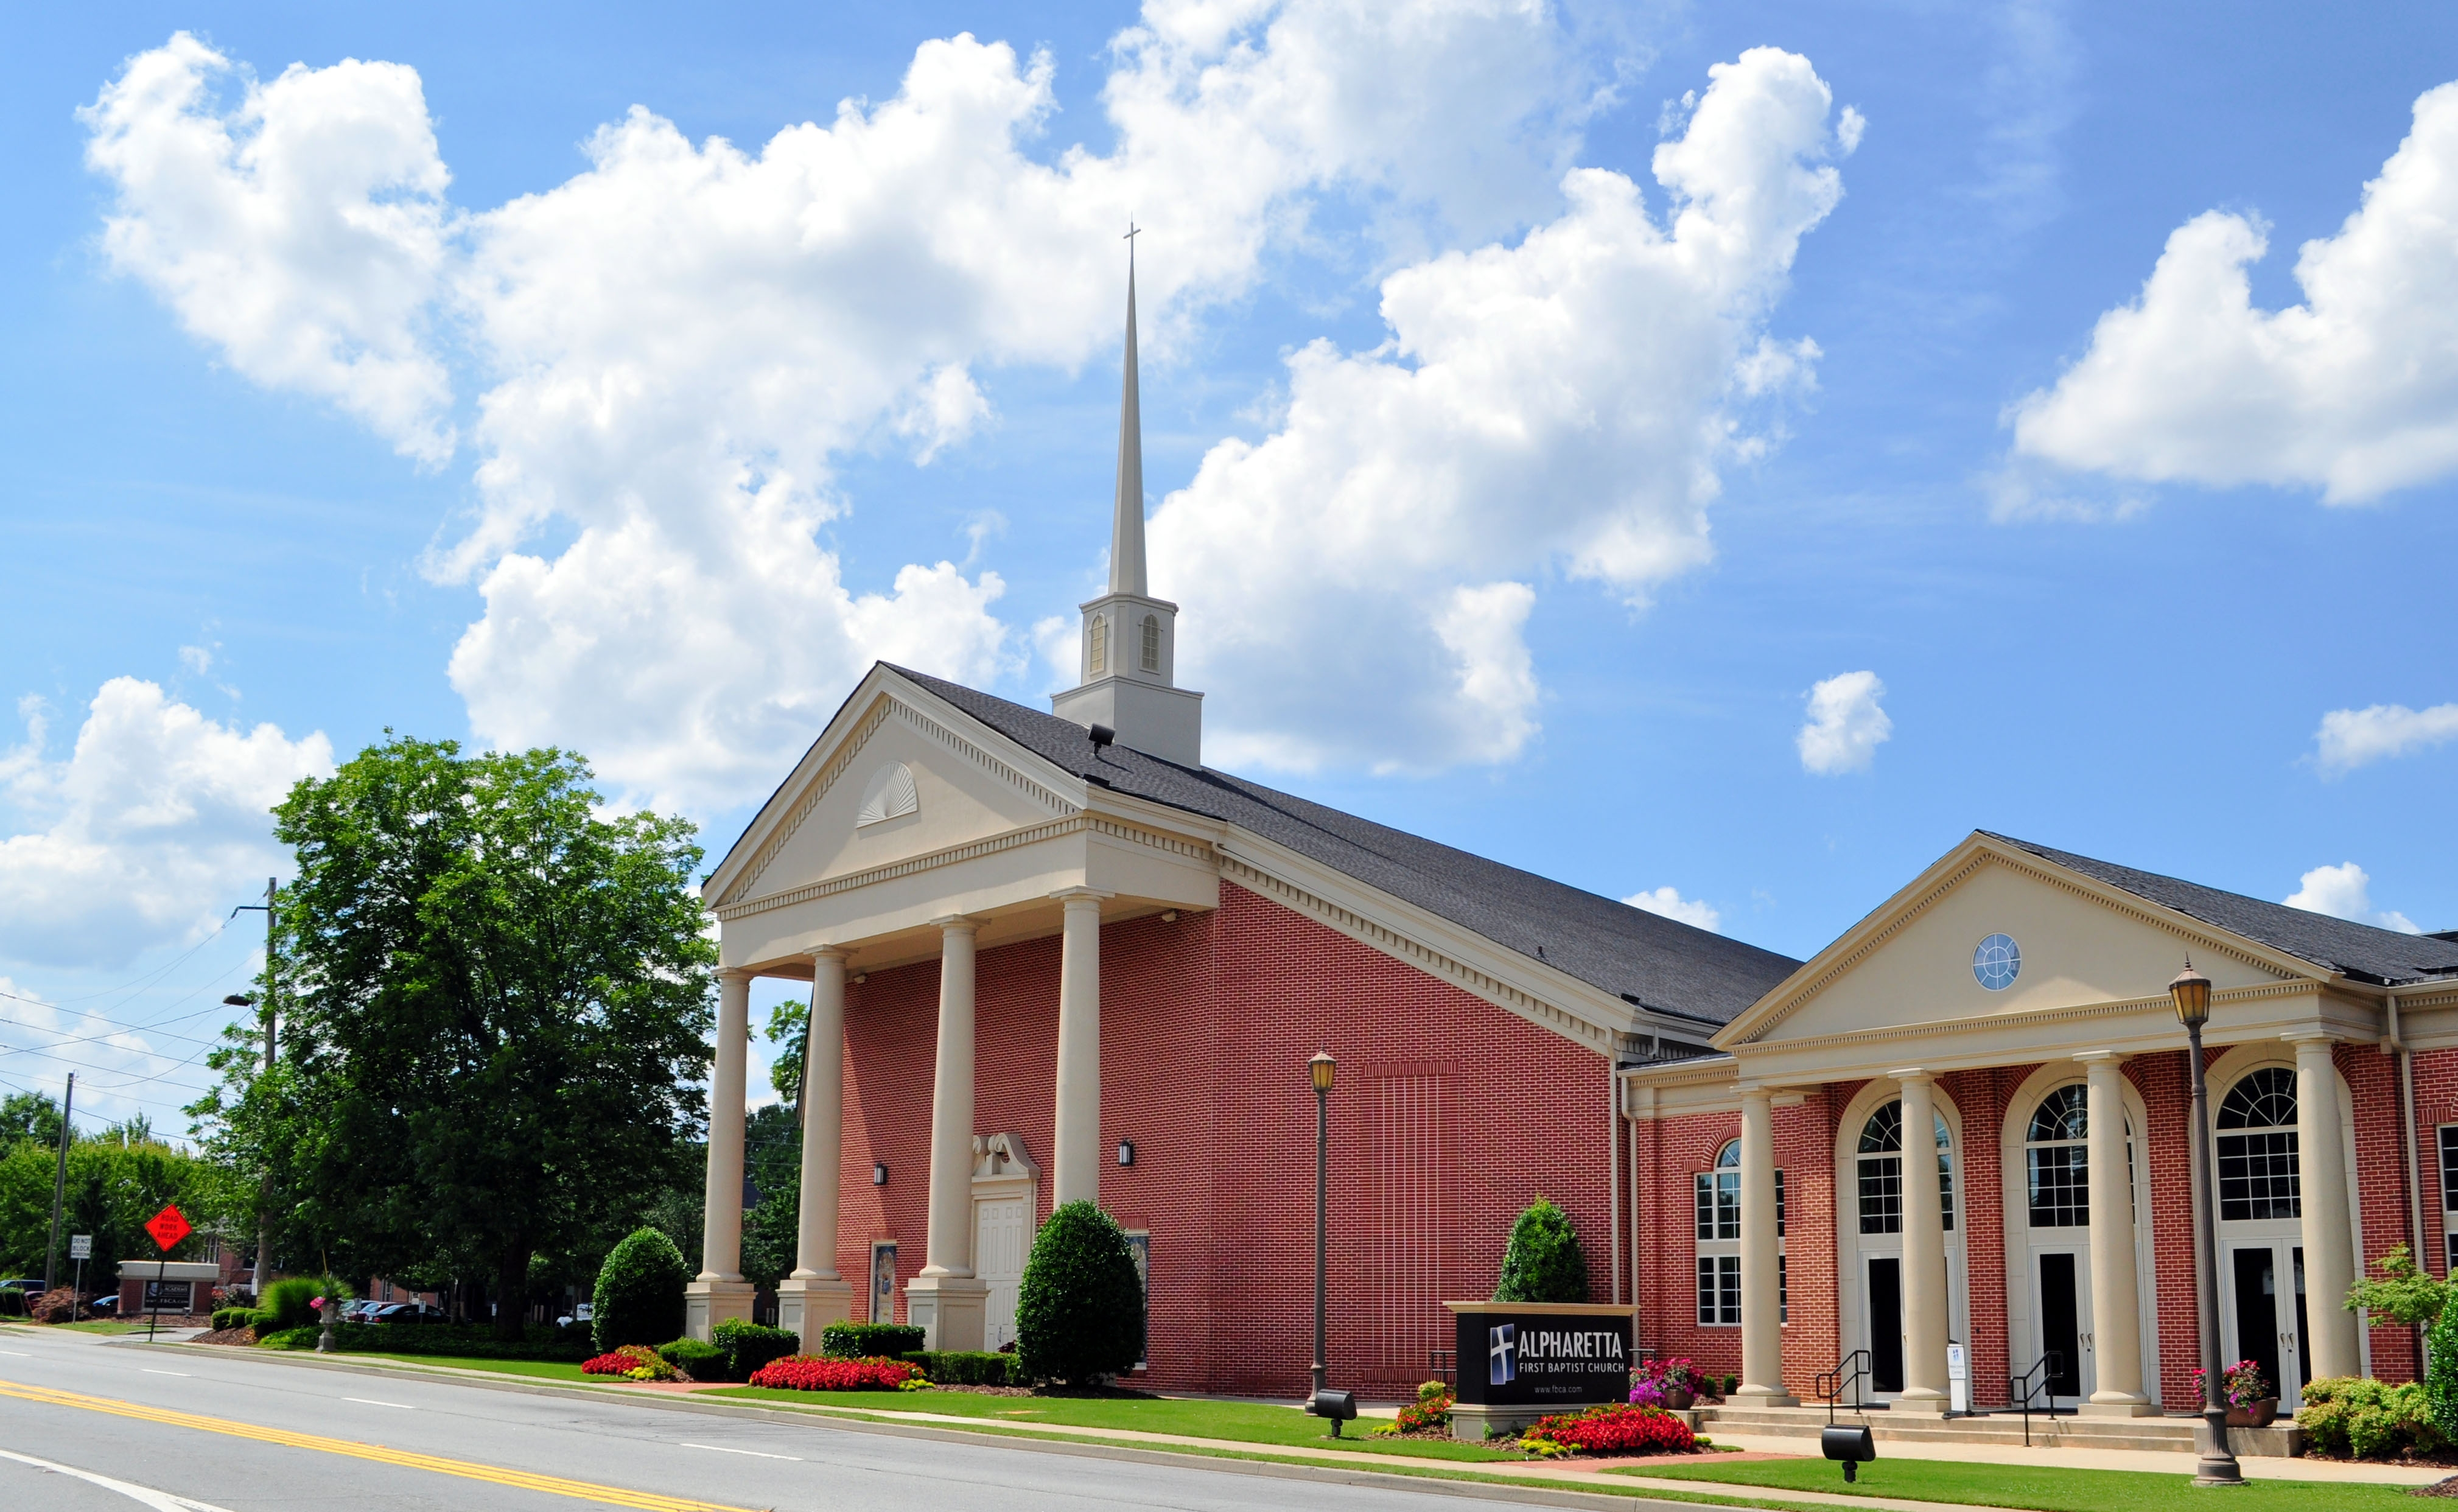 First Baptist Church of Alpharetta